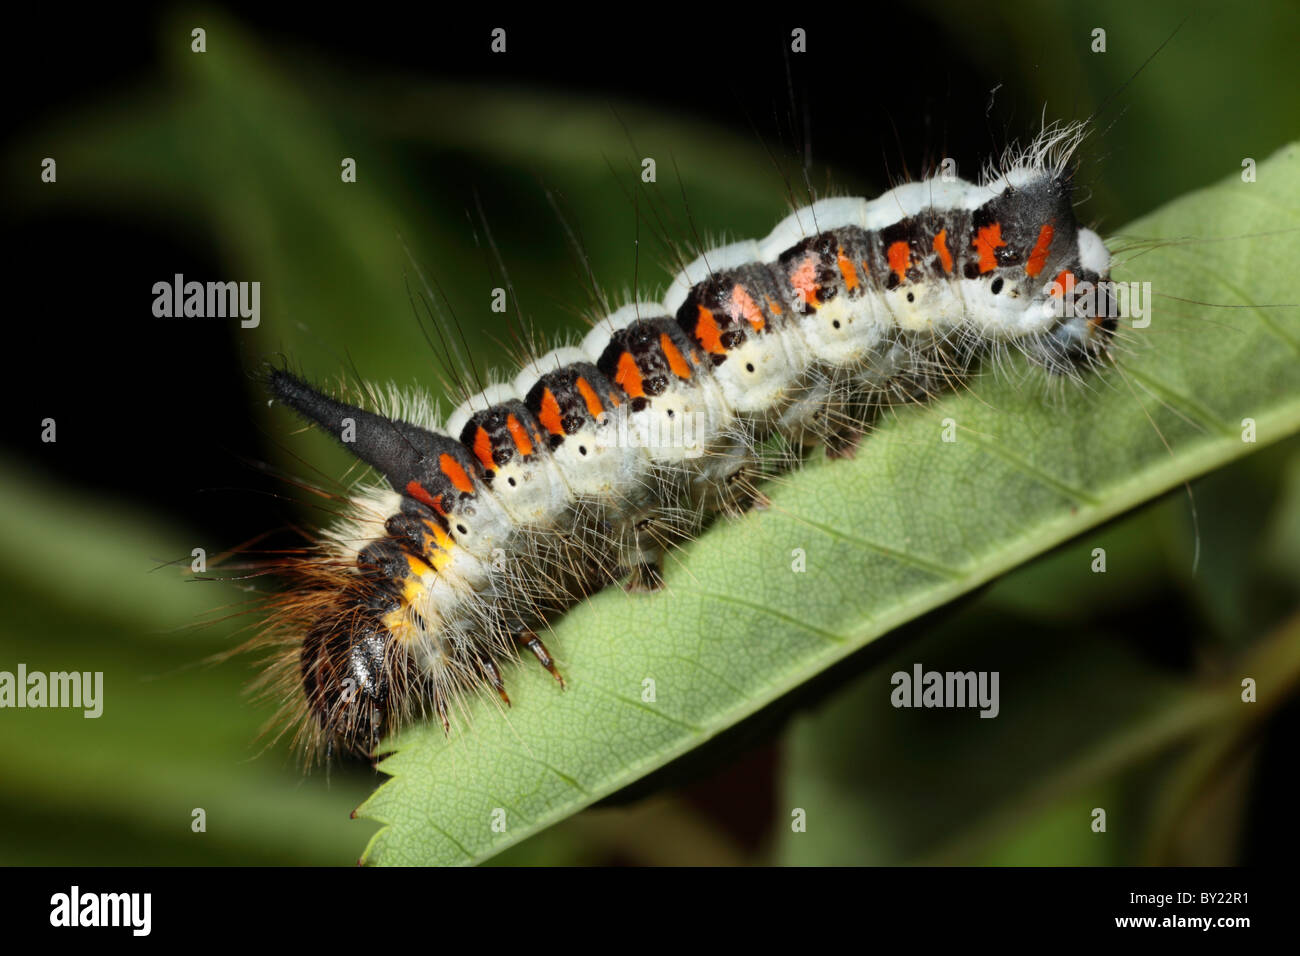 Larva of a Grey Dagger moth (Acronicta psi) on a rose leaf. Powys, Wales. Stock Photo